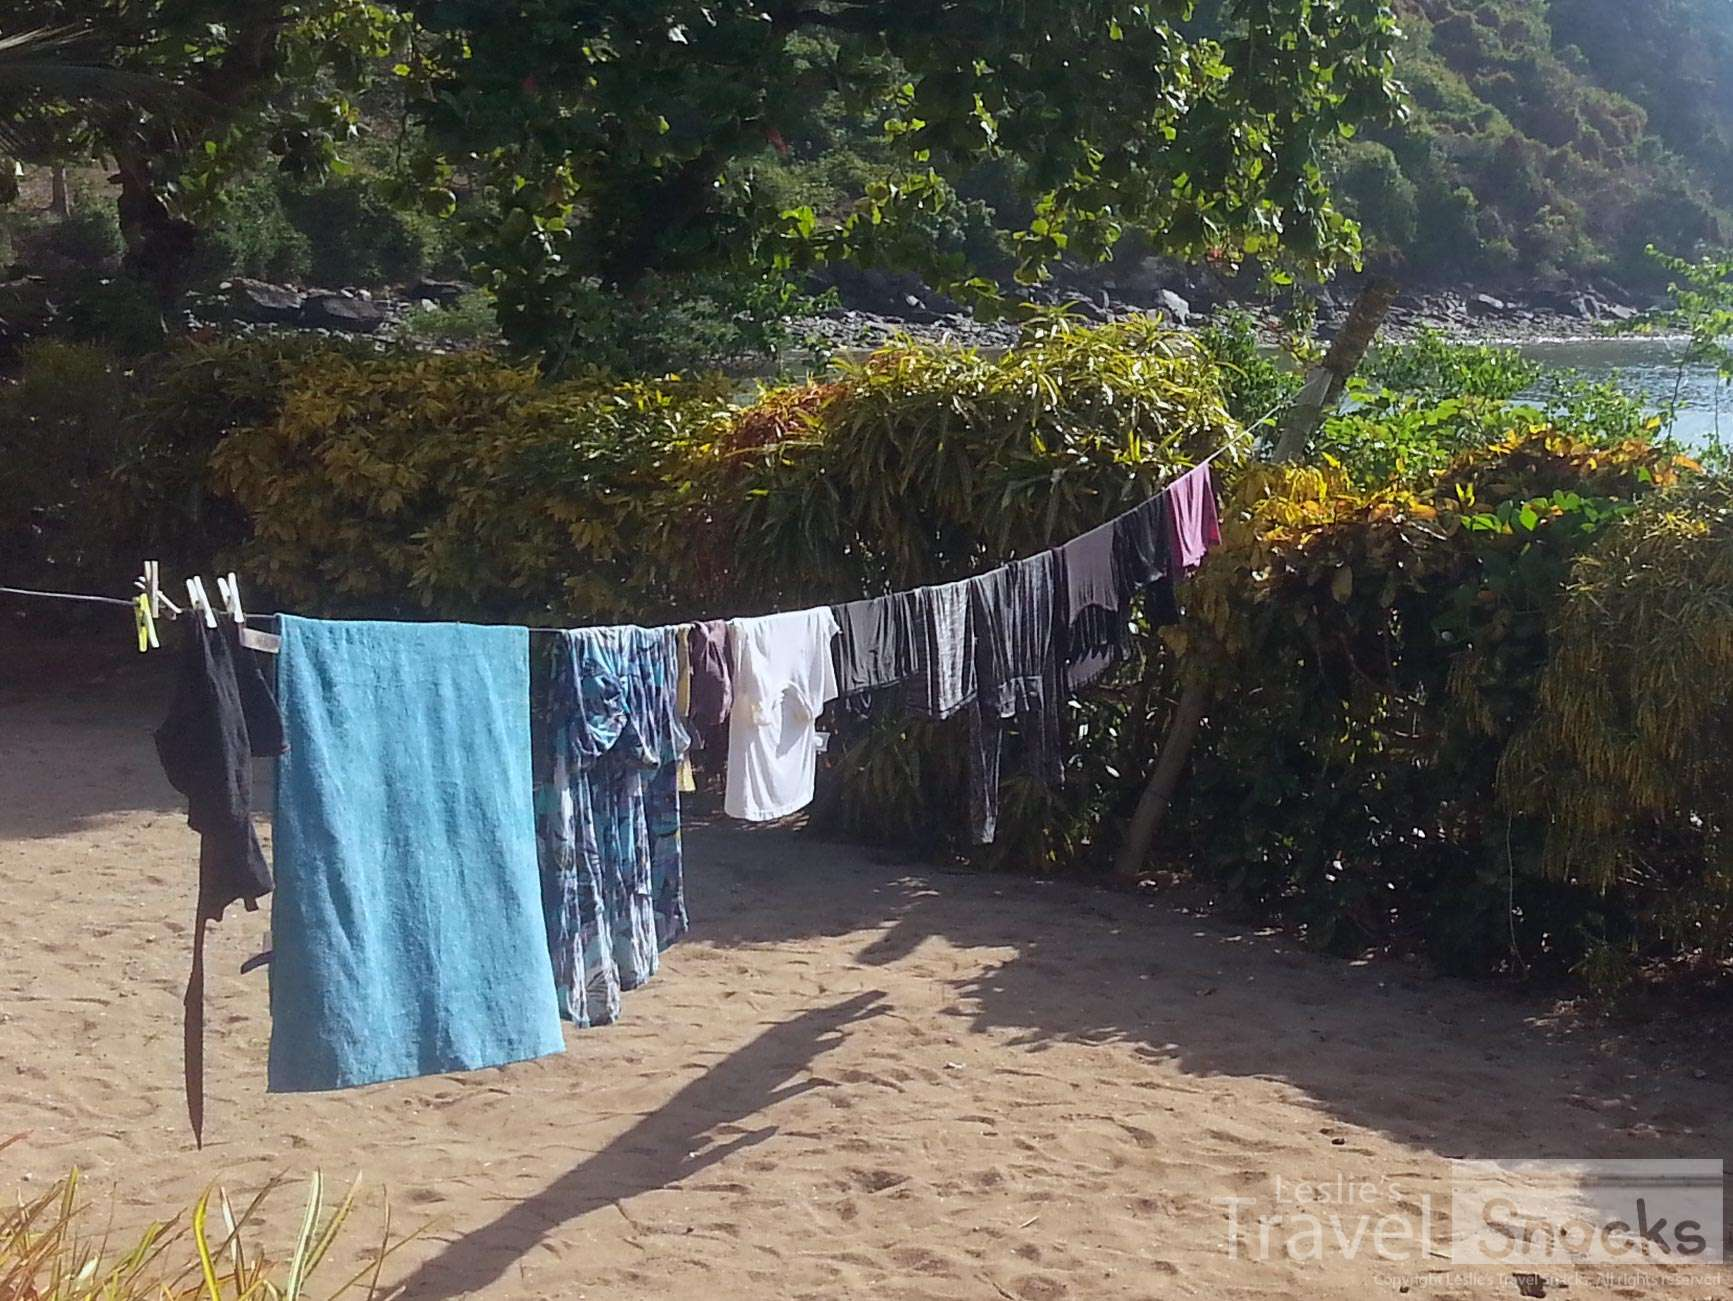 Hanging laundry is a common sight around any budget traveler accommodation!